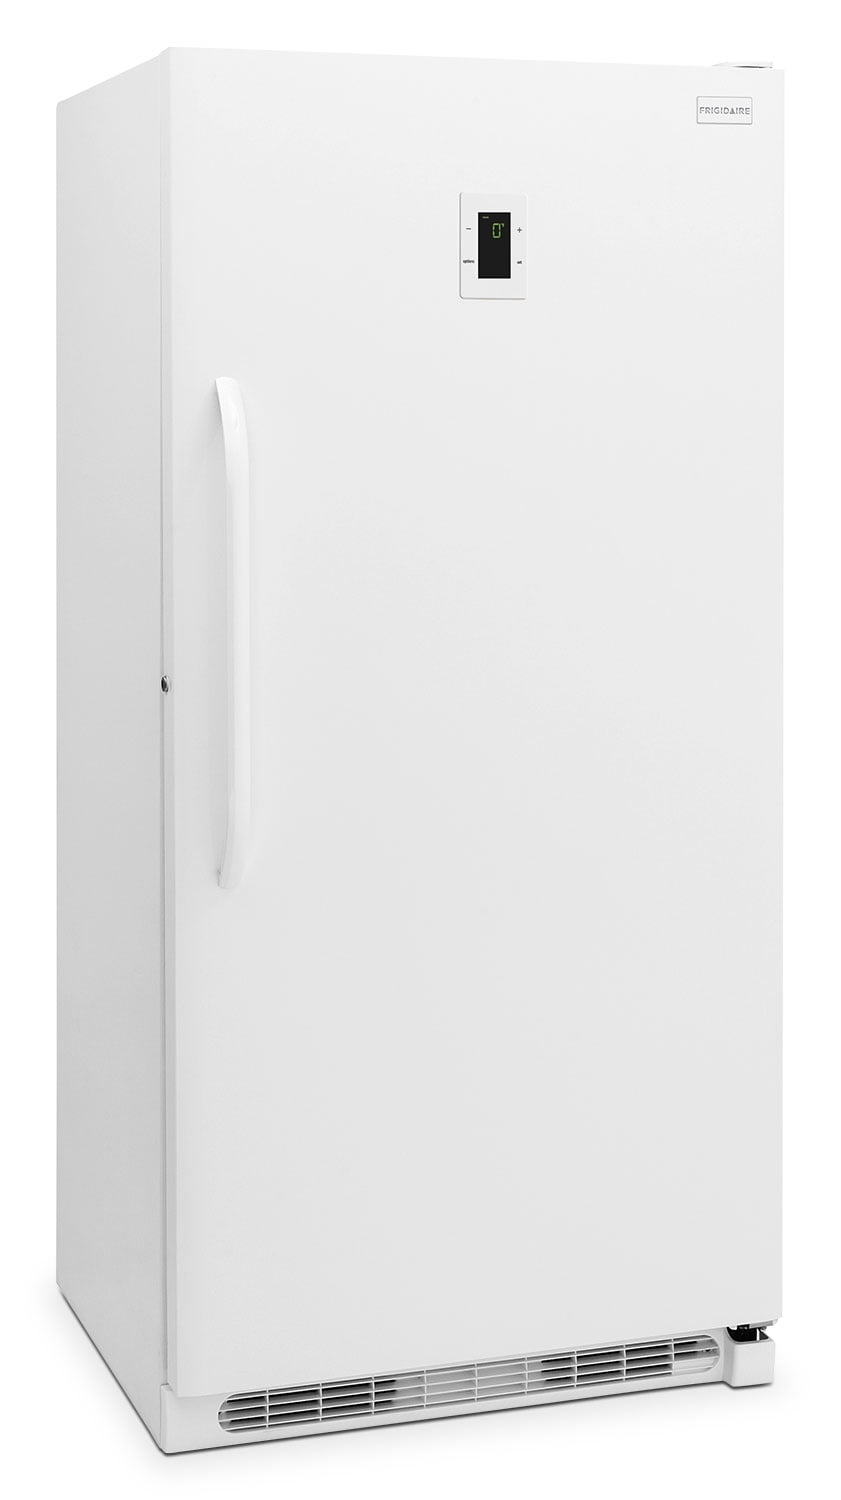 Frigidaire Upright Freezer (20.2 Cu. Ft.) FFFH21F6QW